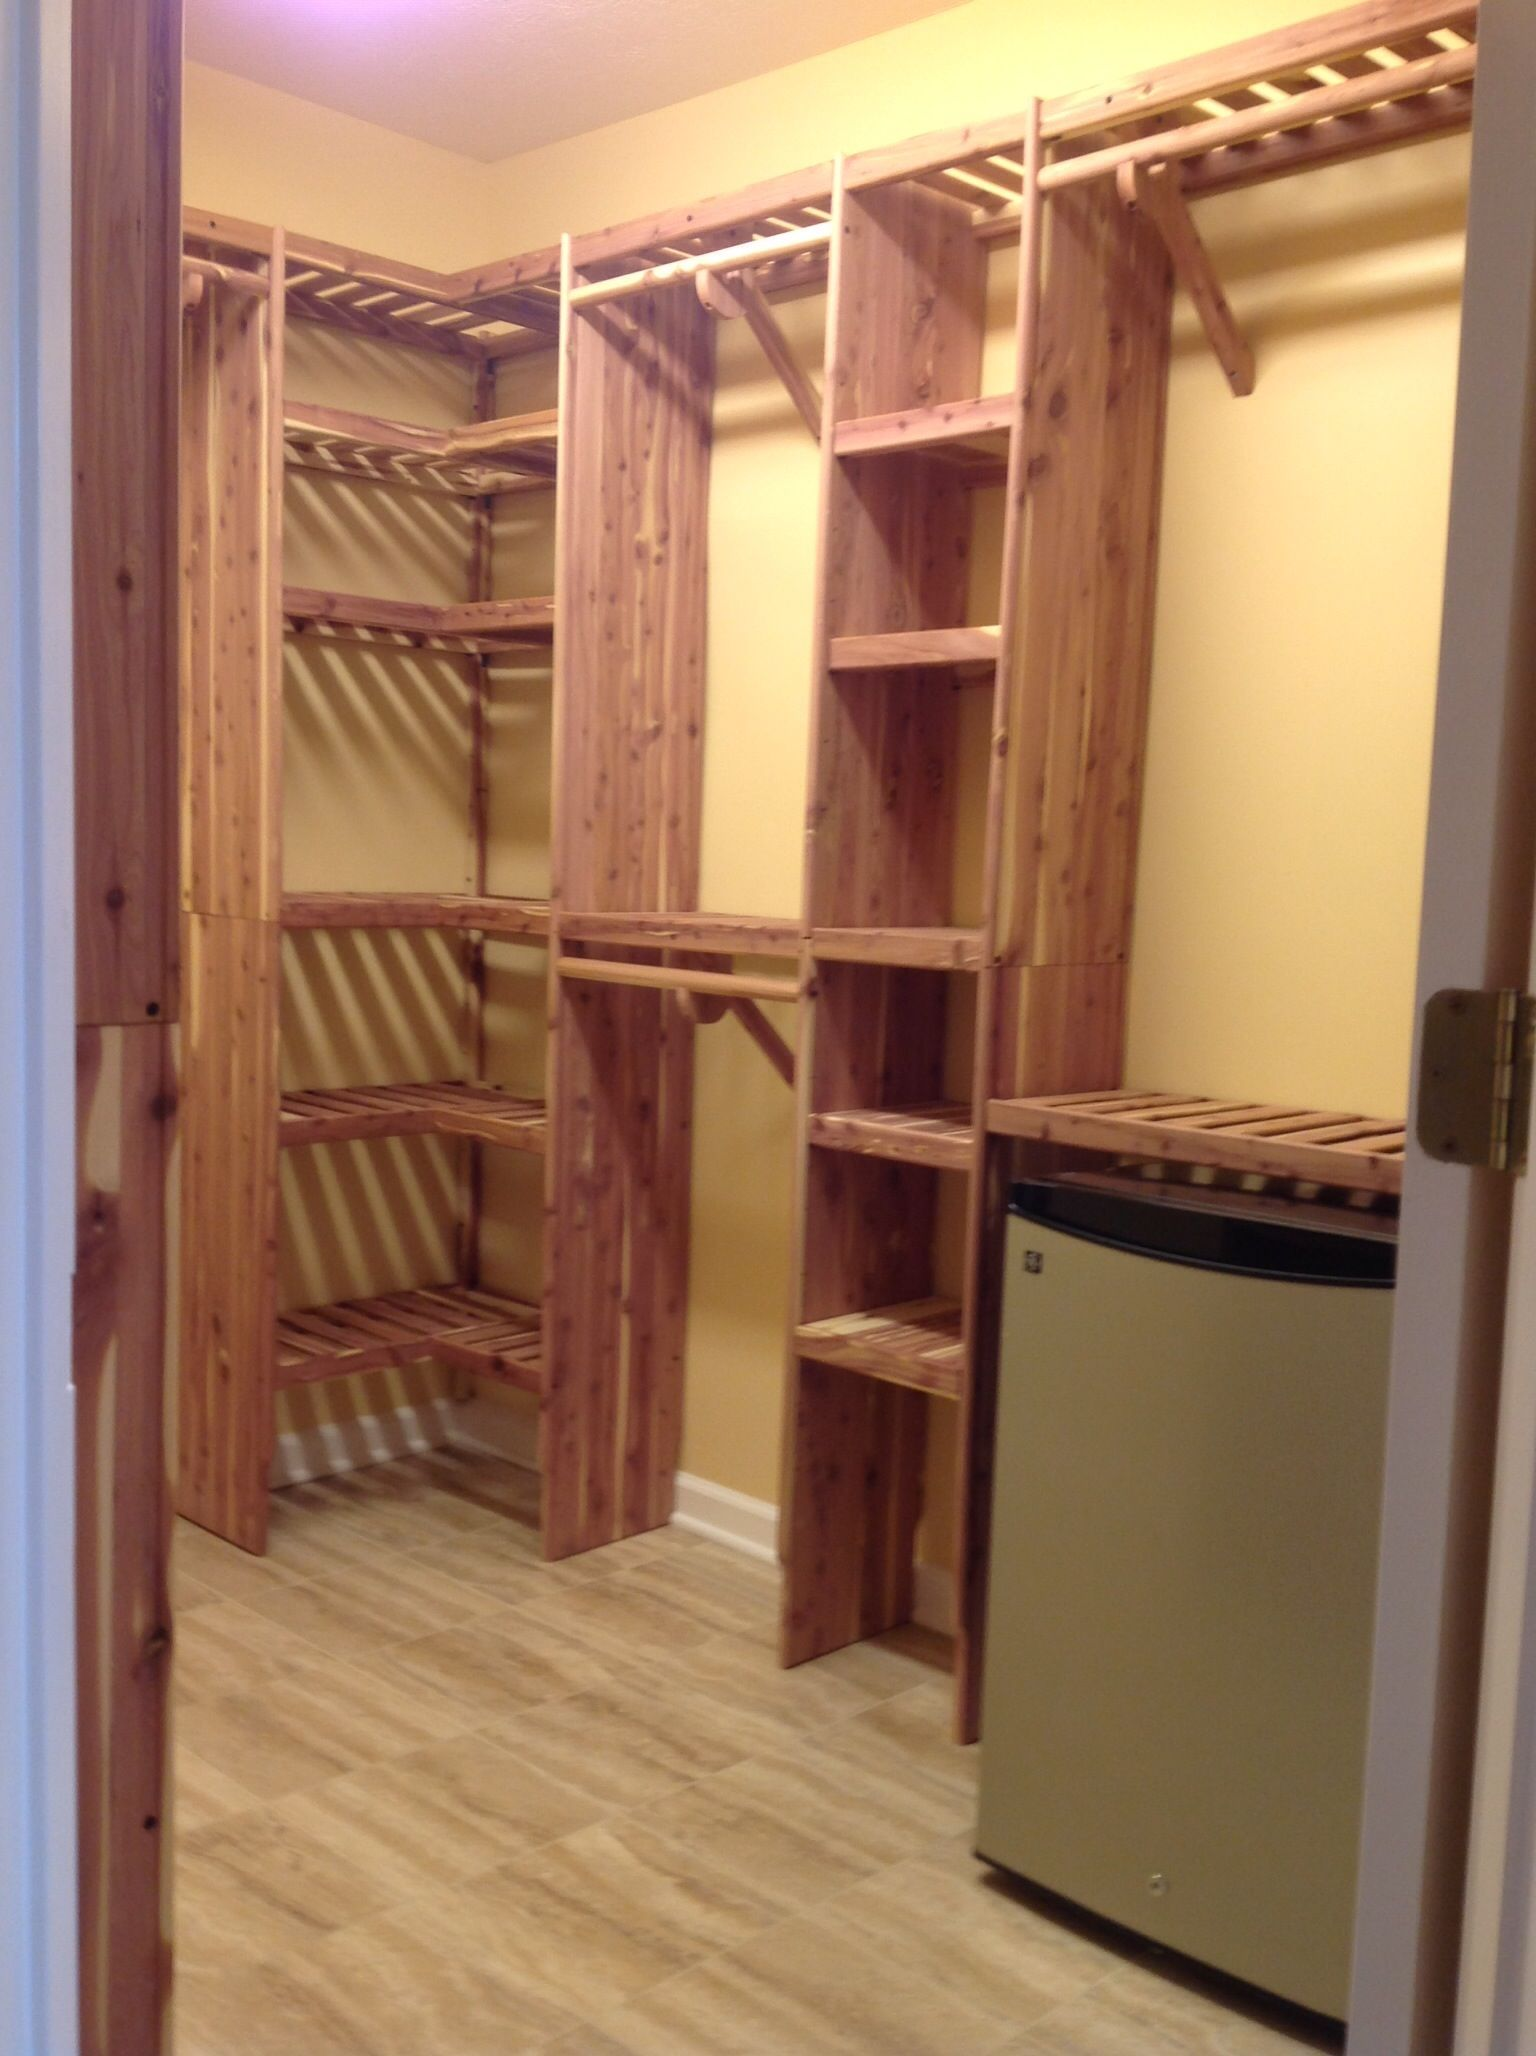 Customizing your closets is easy! This Northern Kentucky